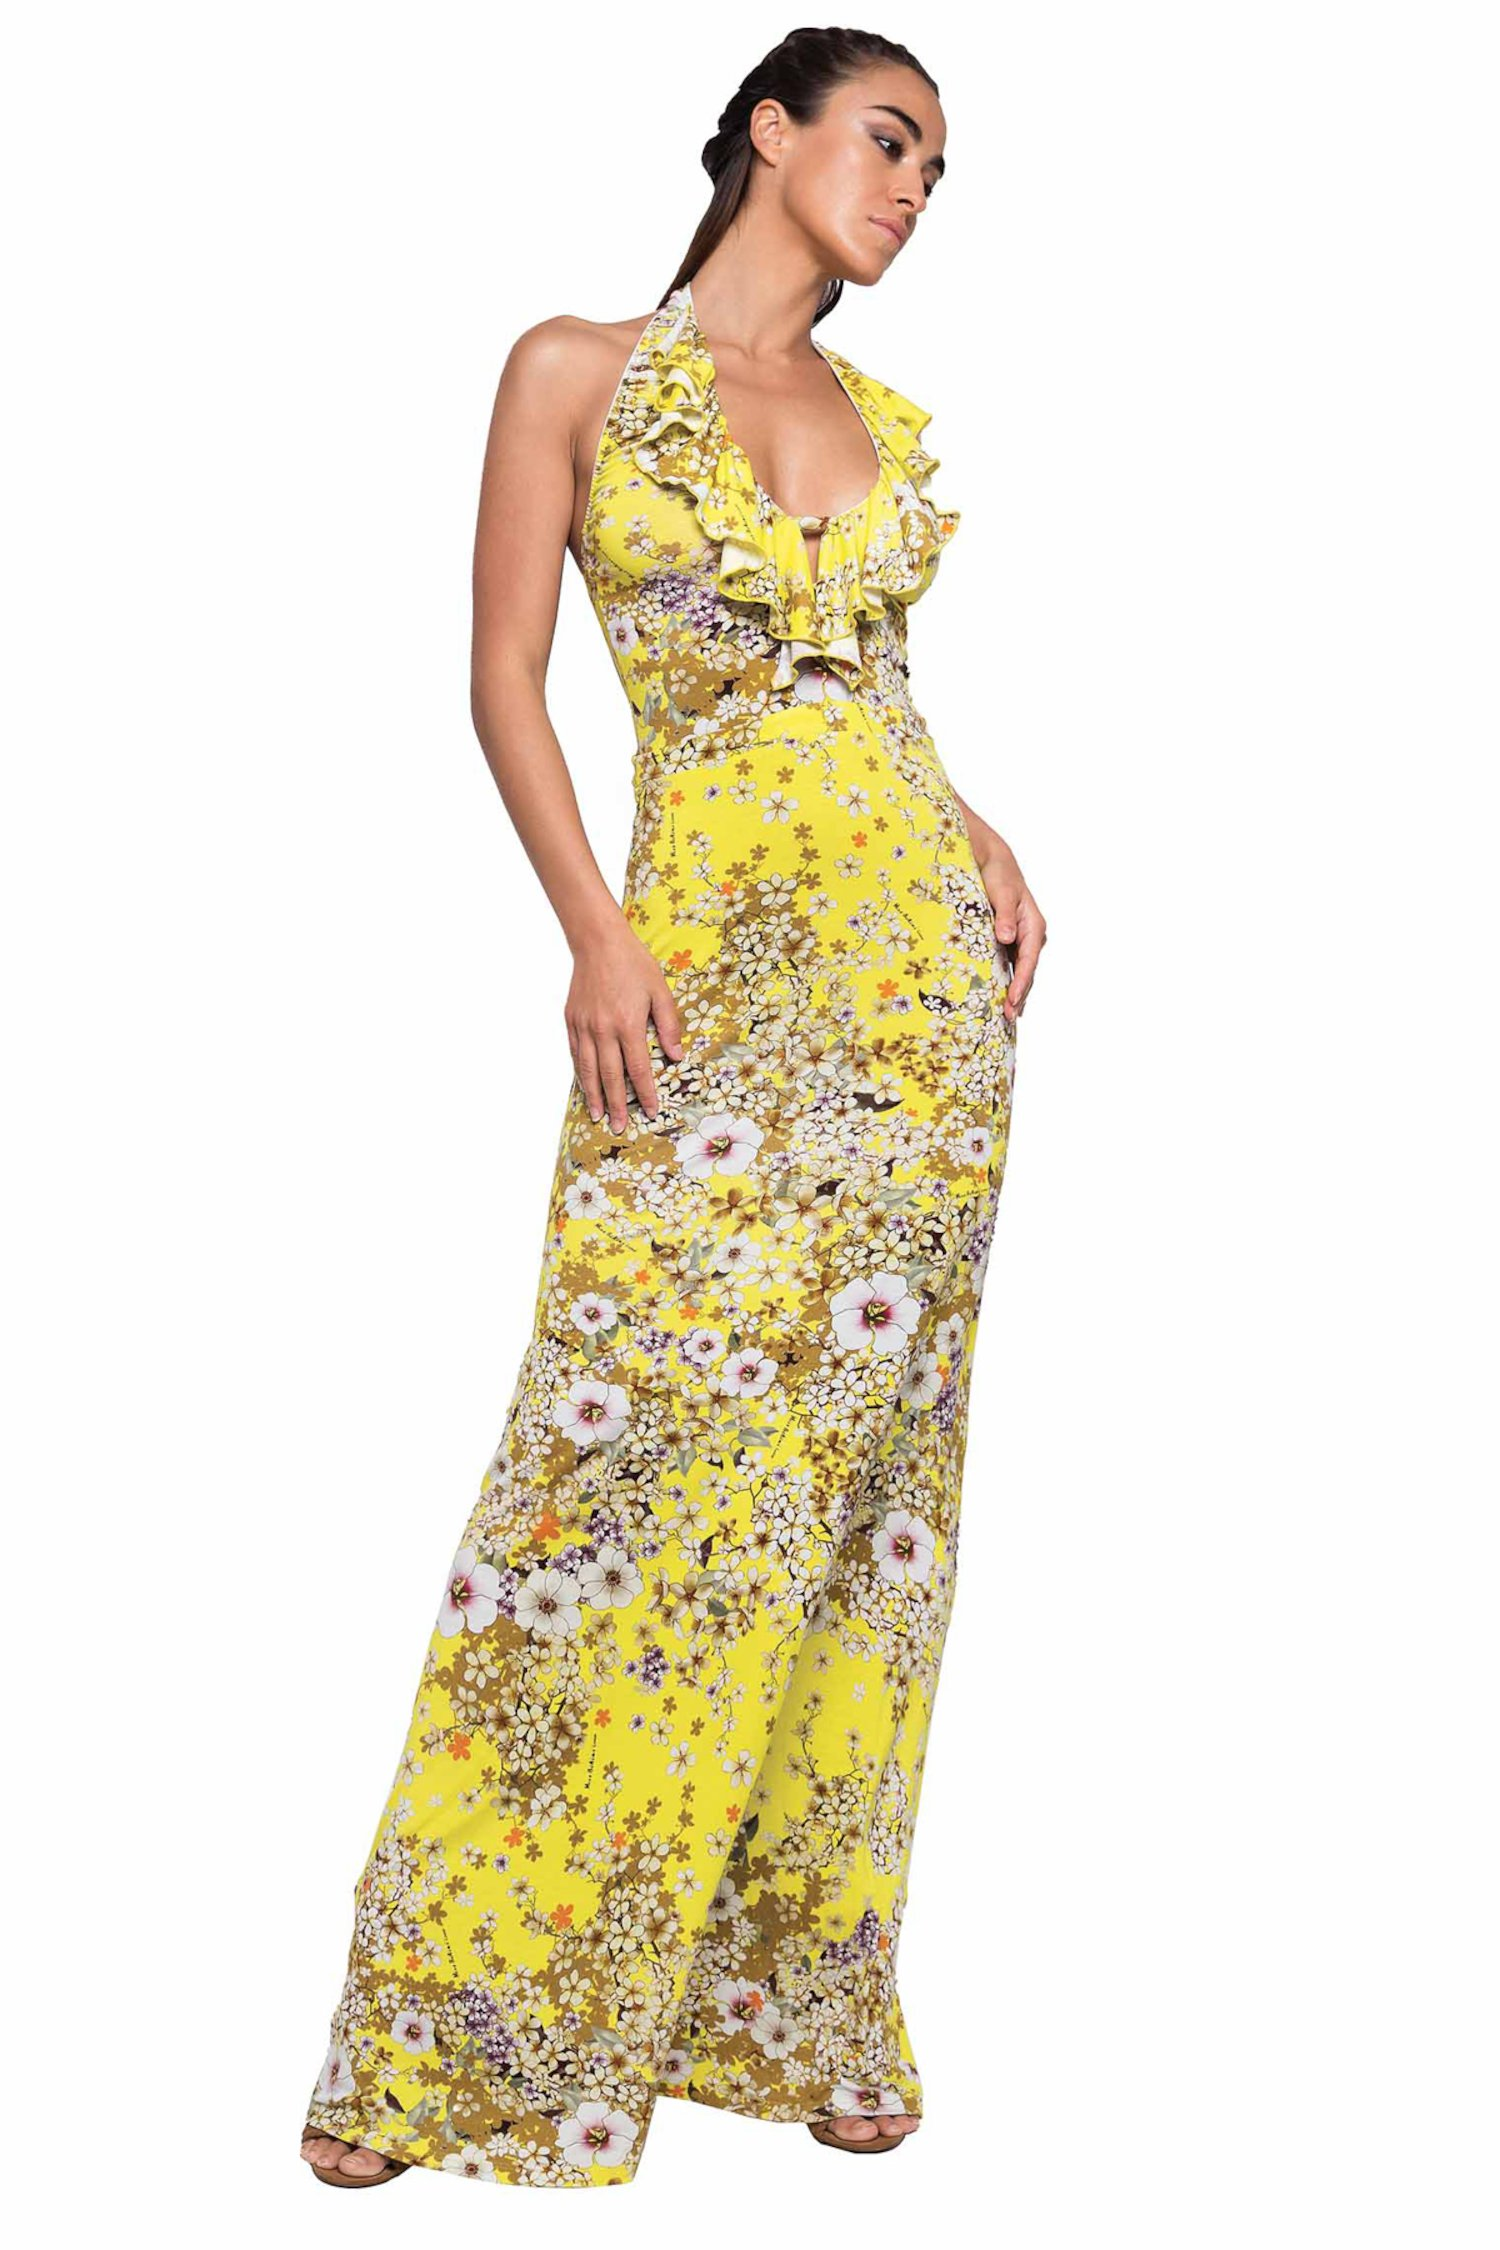 LONG DRESS HALTER WITH VOLANT - Primavera Giallo